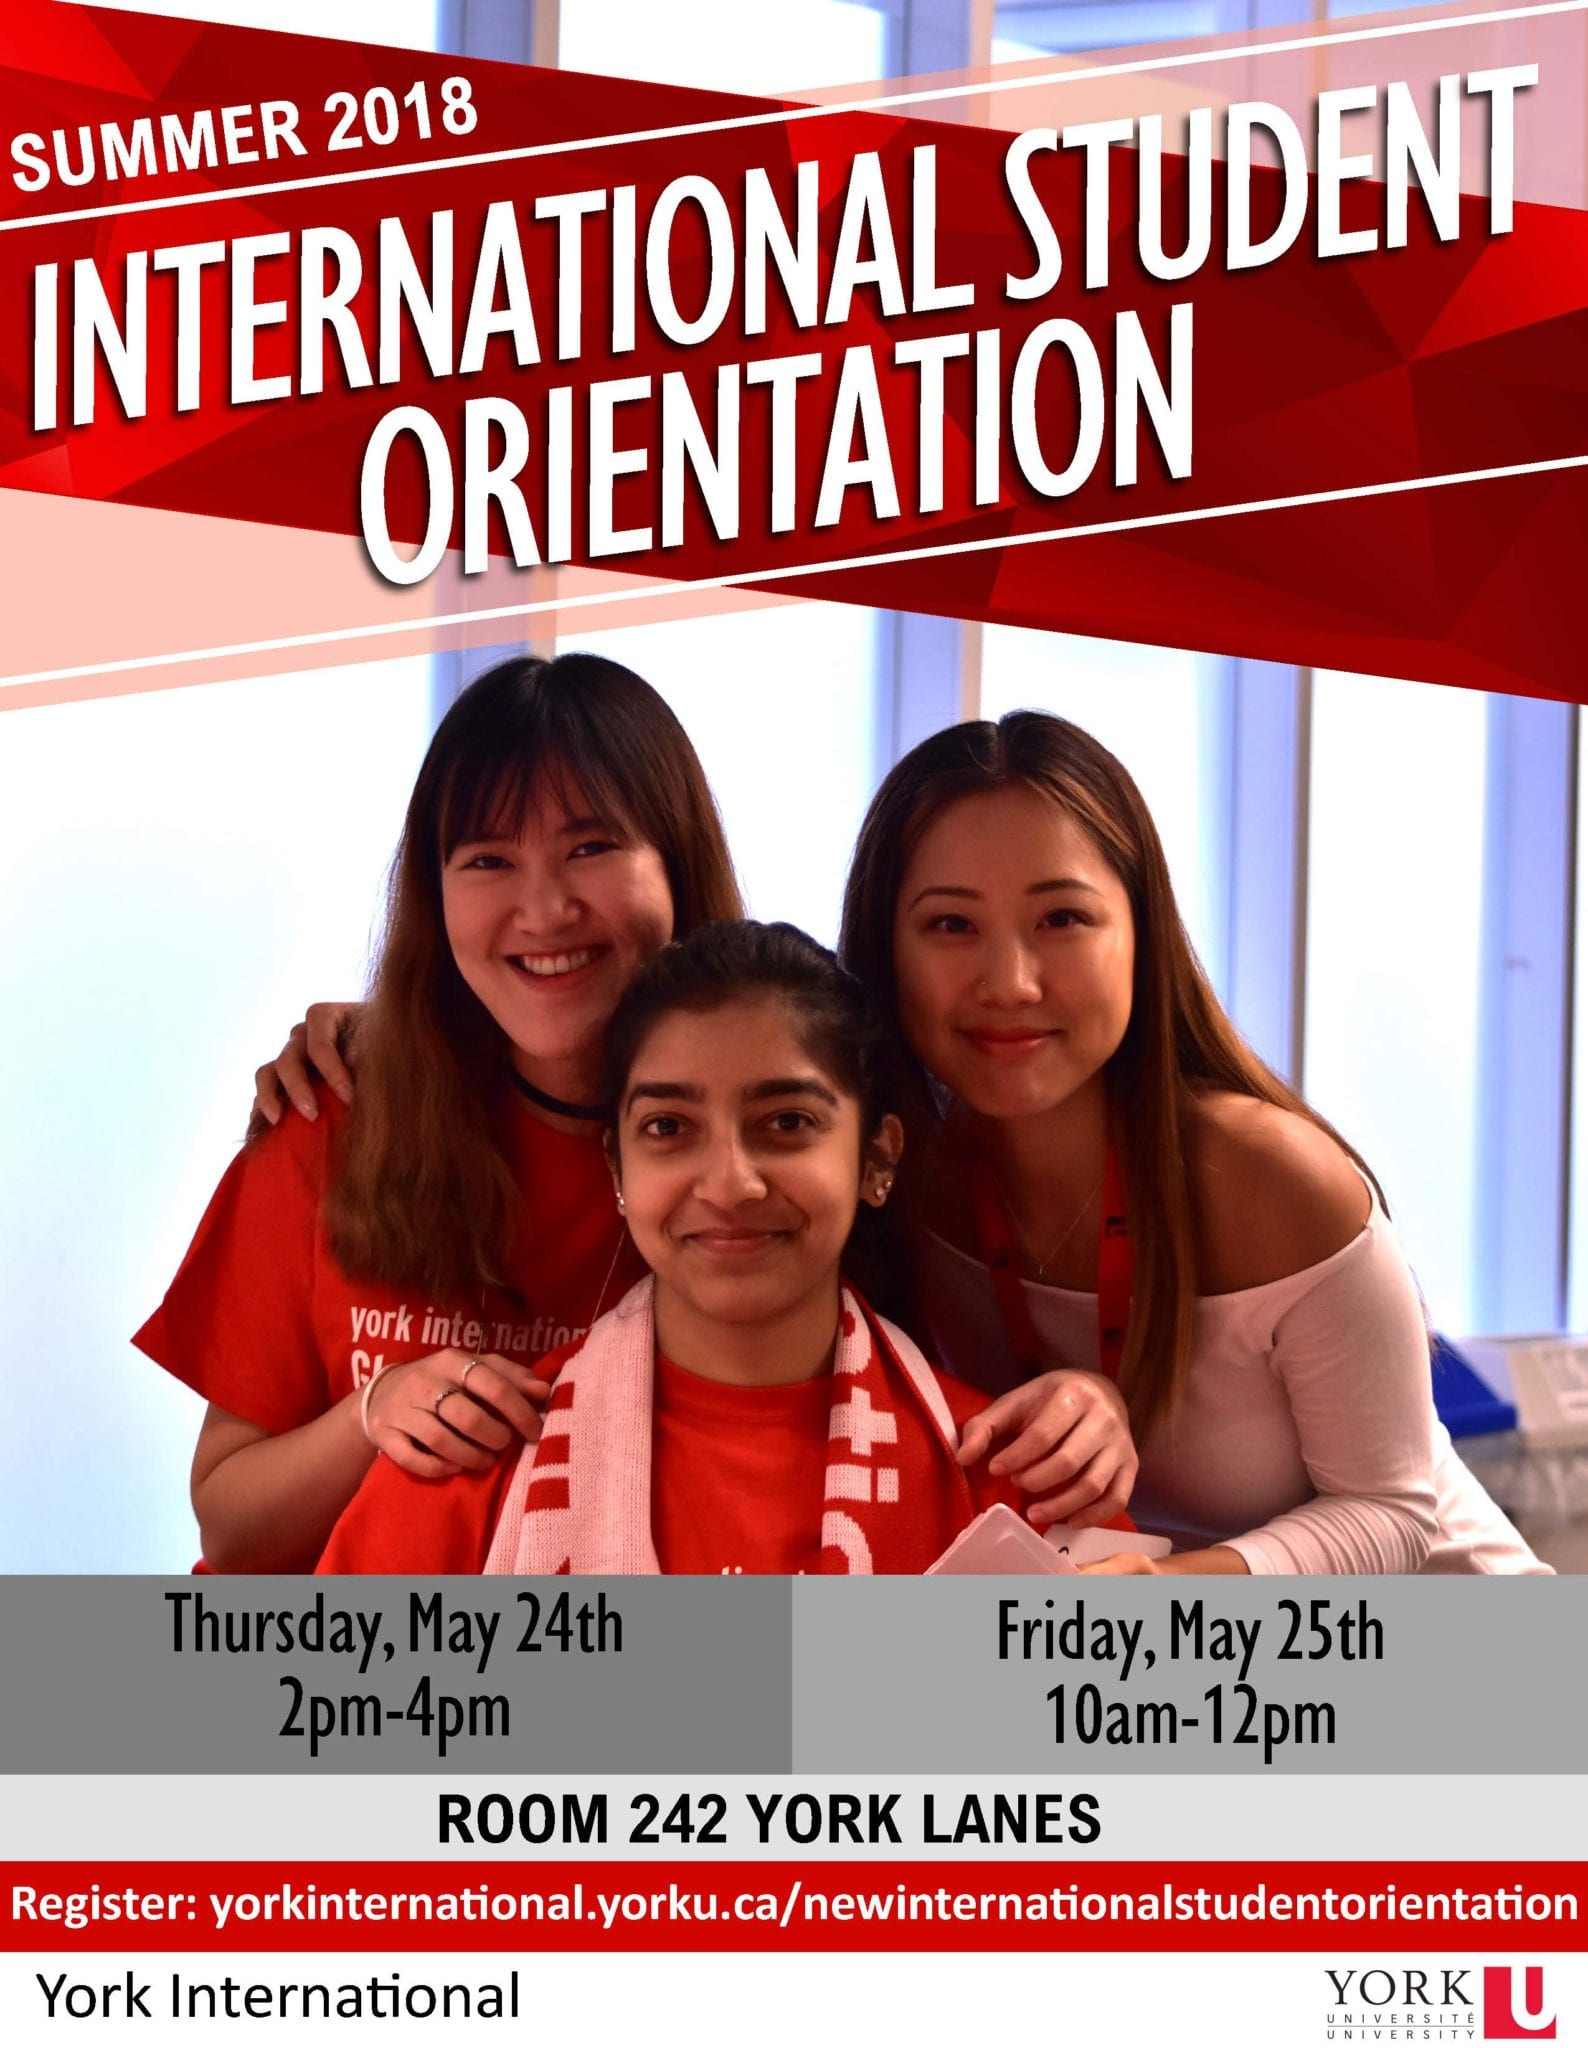 New International Student Orientation @ York Lanes, Room 242 (second floor)